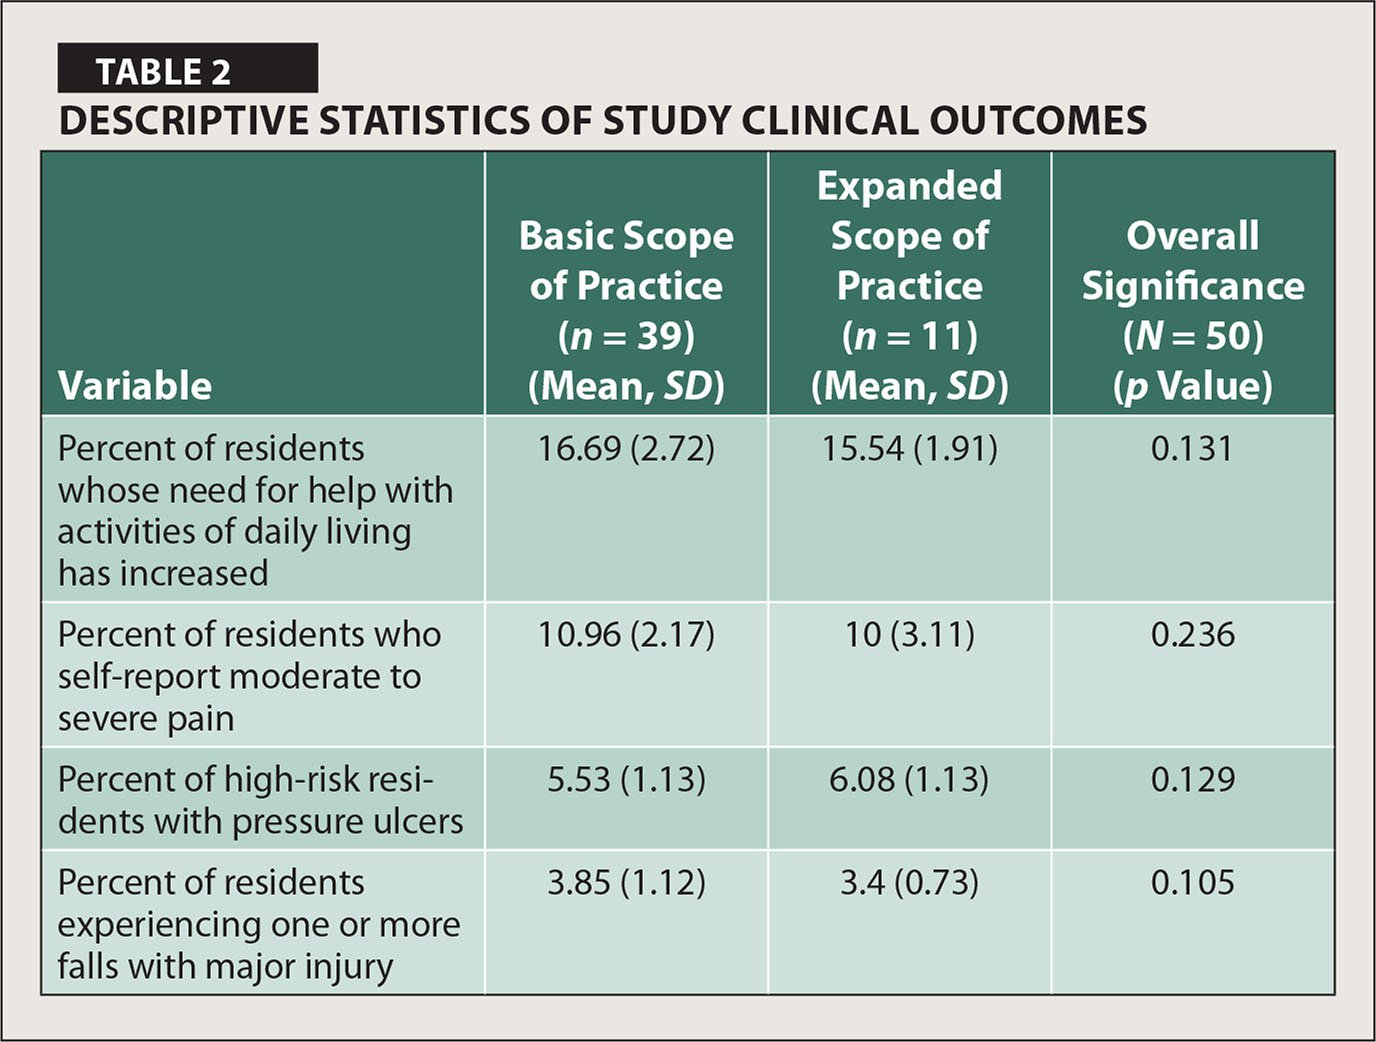 Descriptive Statistics of Study Clinical Outcomes